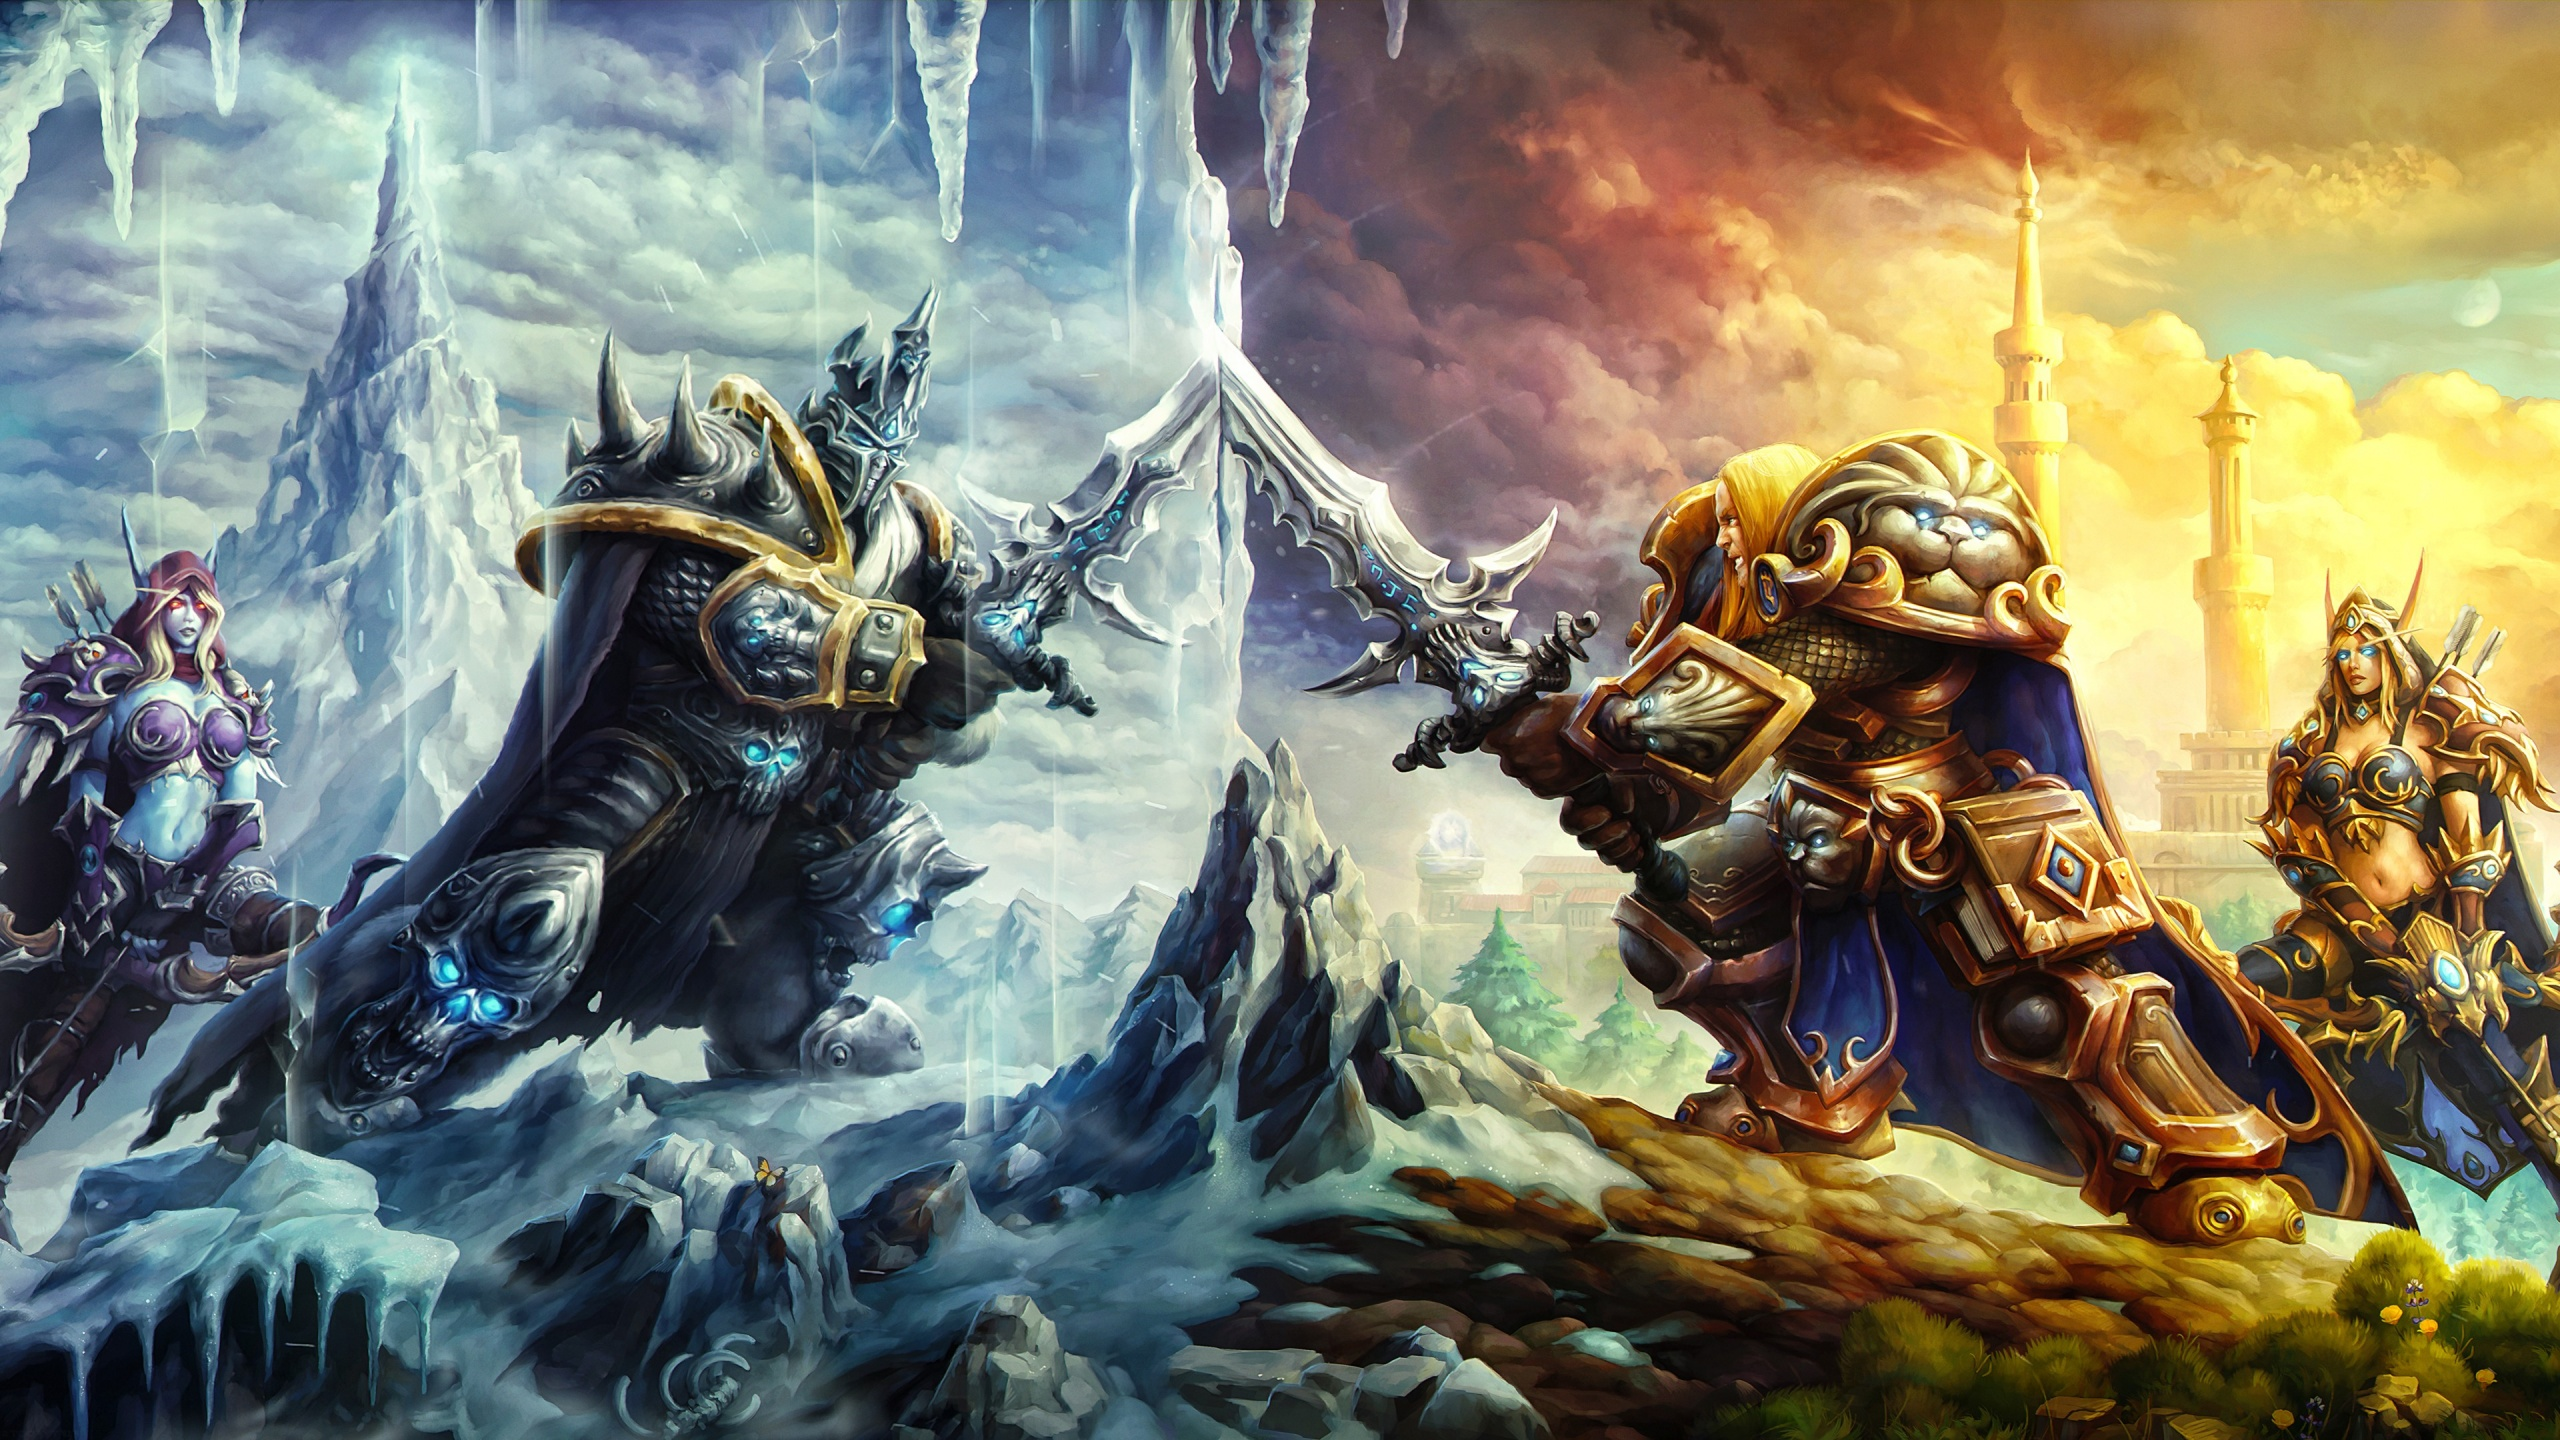 heroes of the storm game wallpaper background 61881